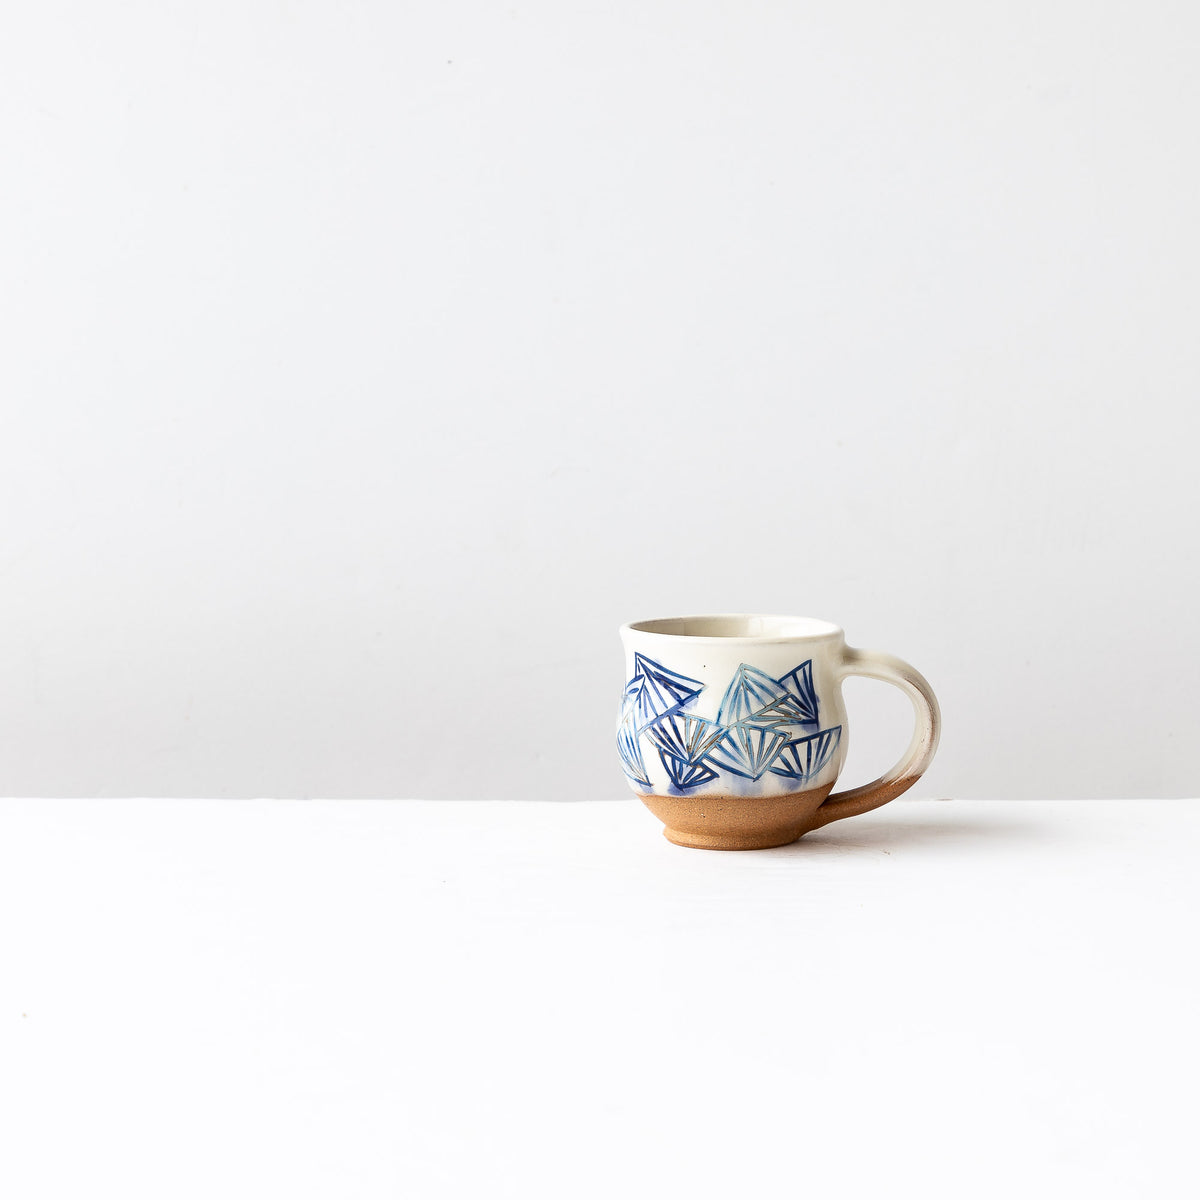 Blue Pattern - Handmade Mishima Espresso Cup With Folding Fan Pattern - Sold by Chic & Basta